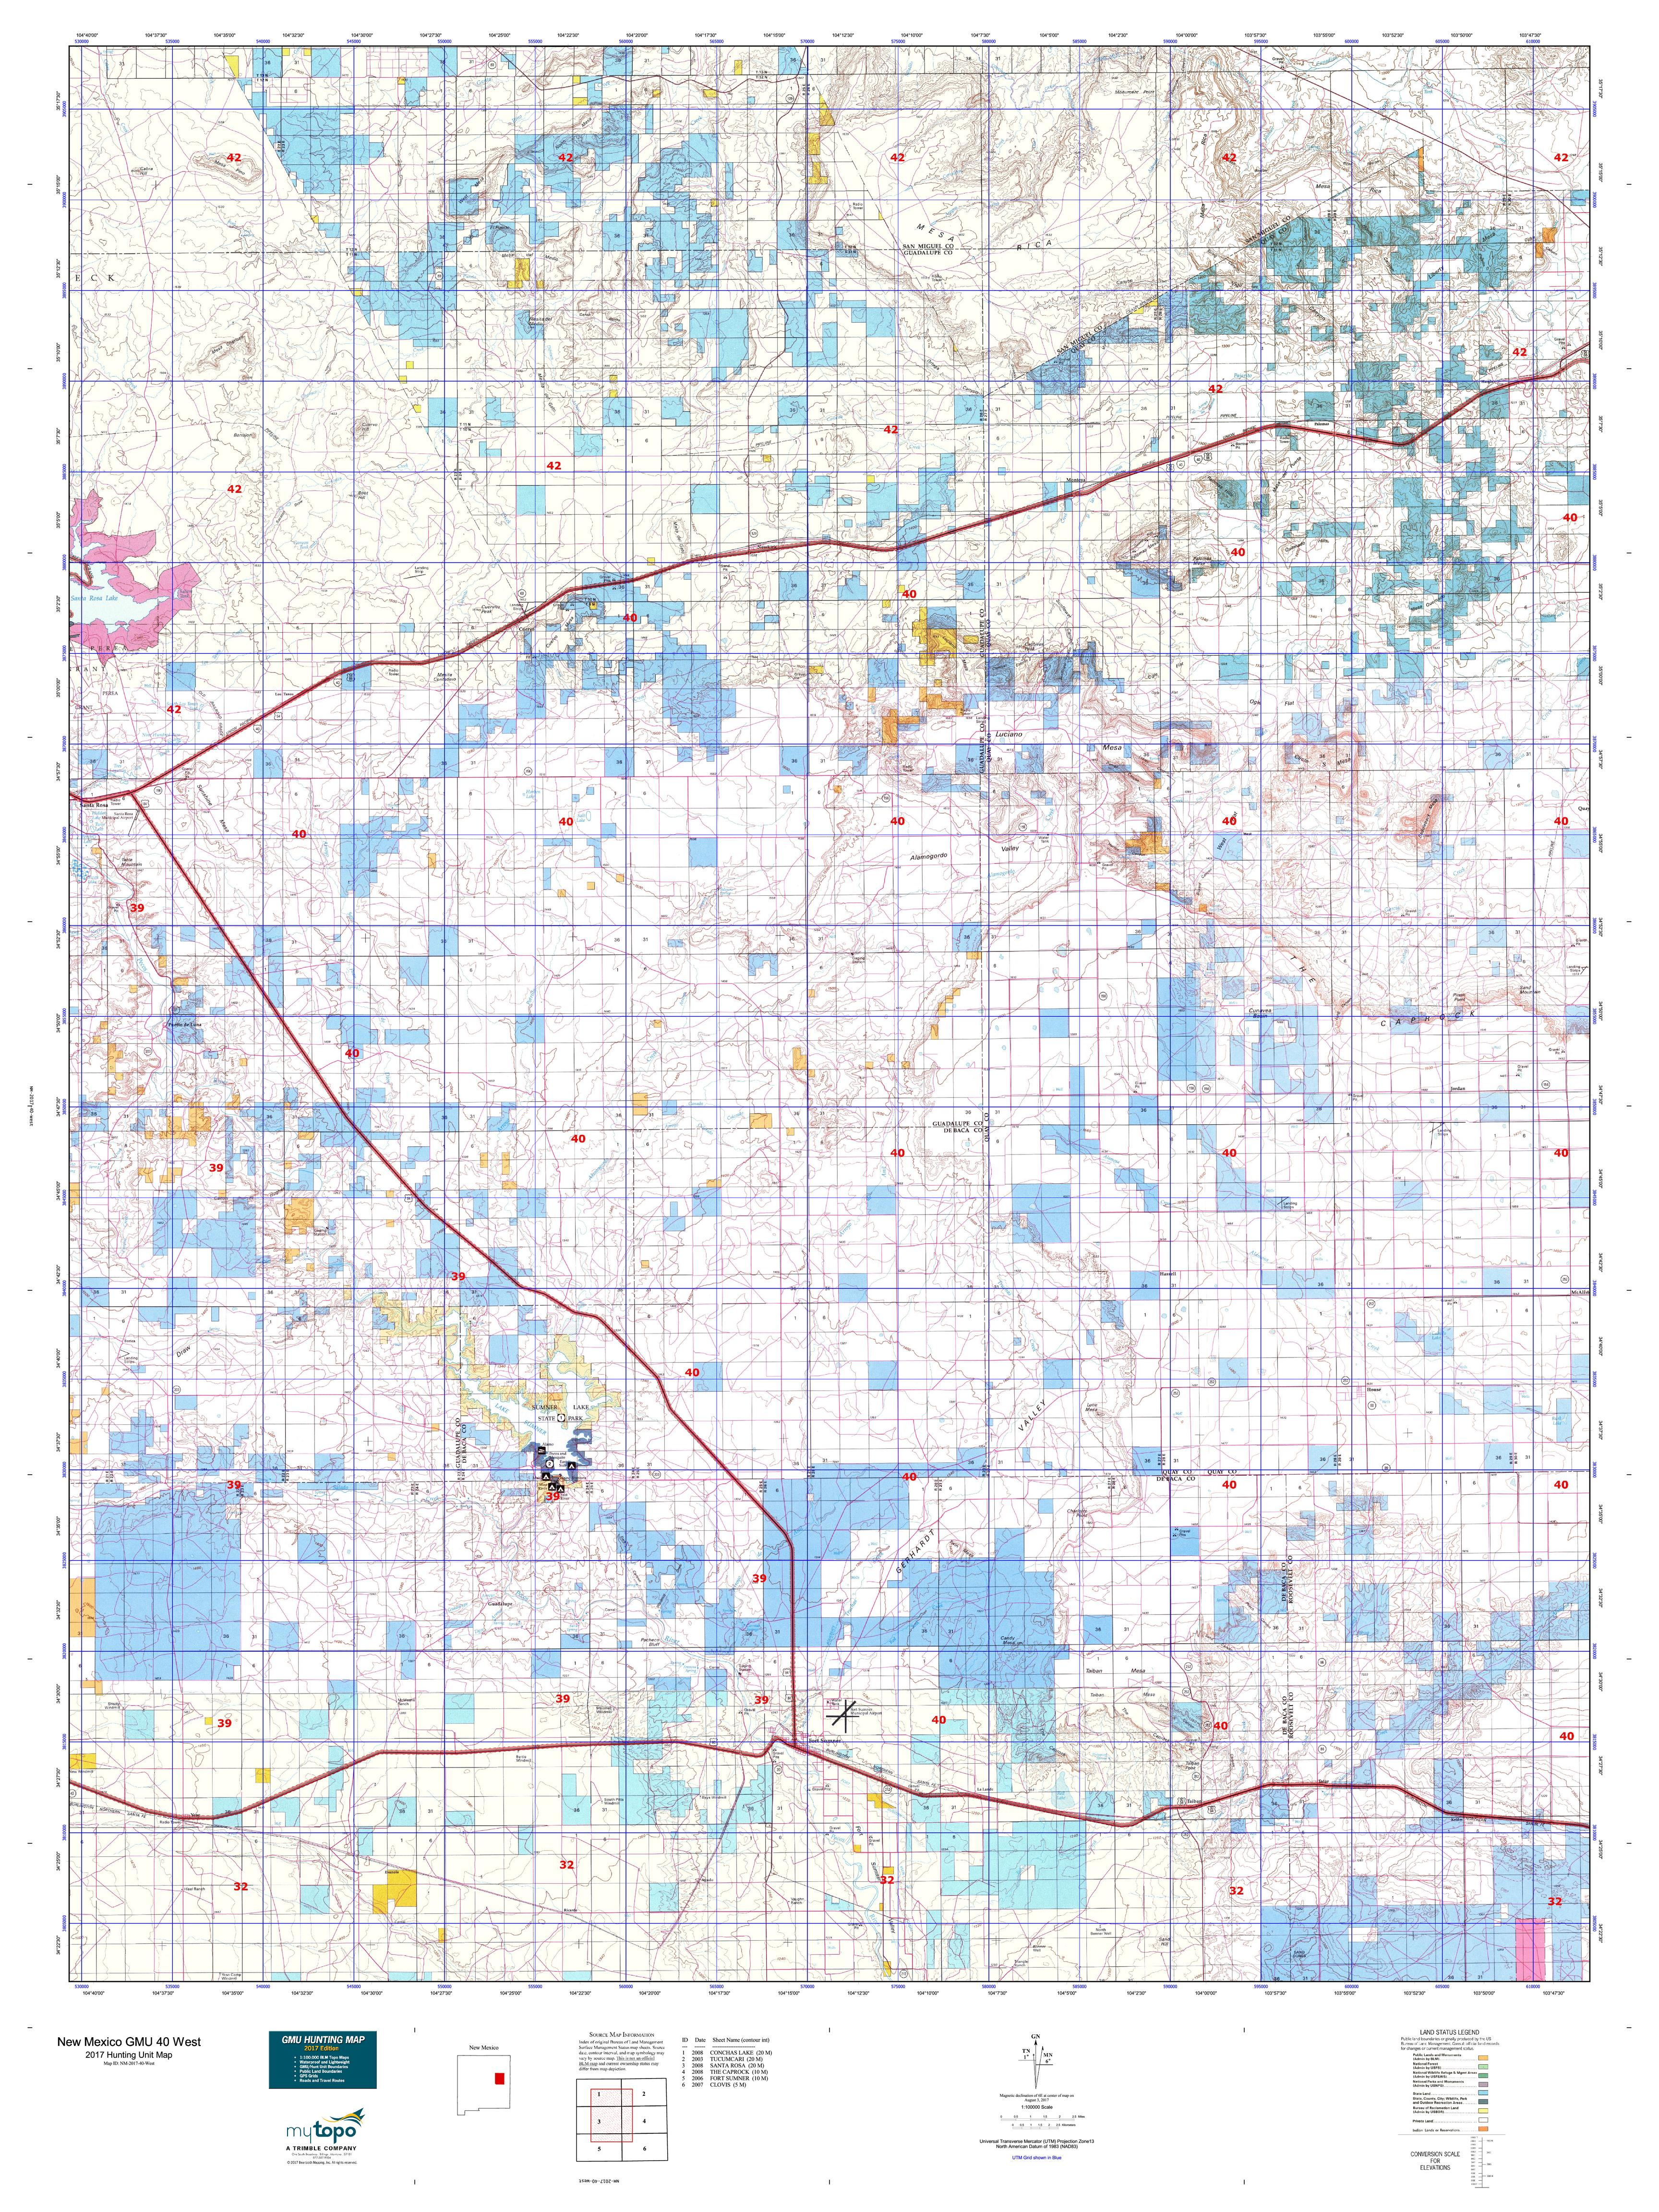 New Mexico GMU East Map MyTopo - Detailed map of new mexico